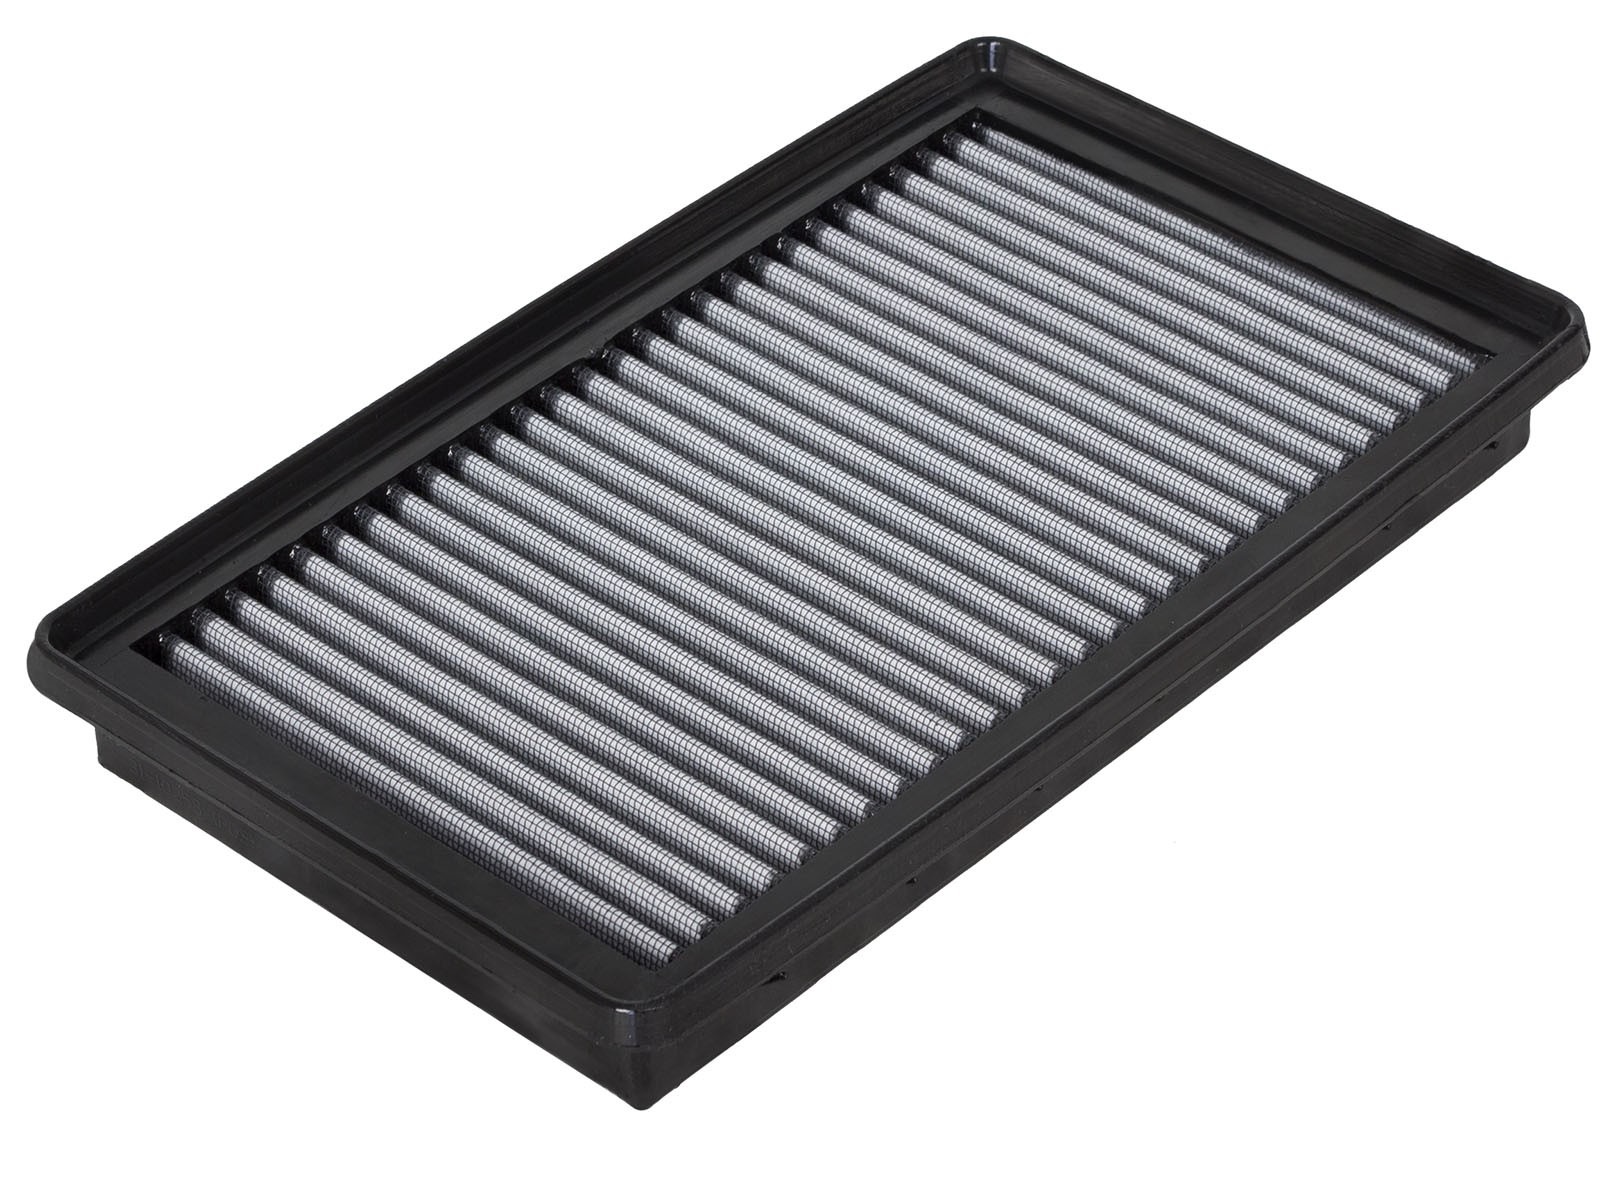 aFe POWER 31-10258 Magnum FLOW Pro DRY S Air Filter